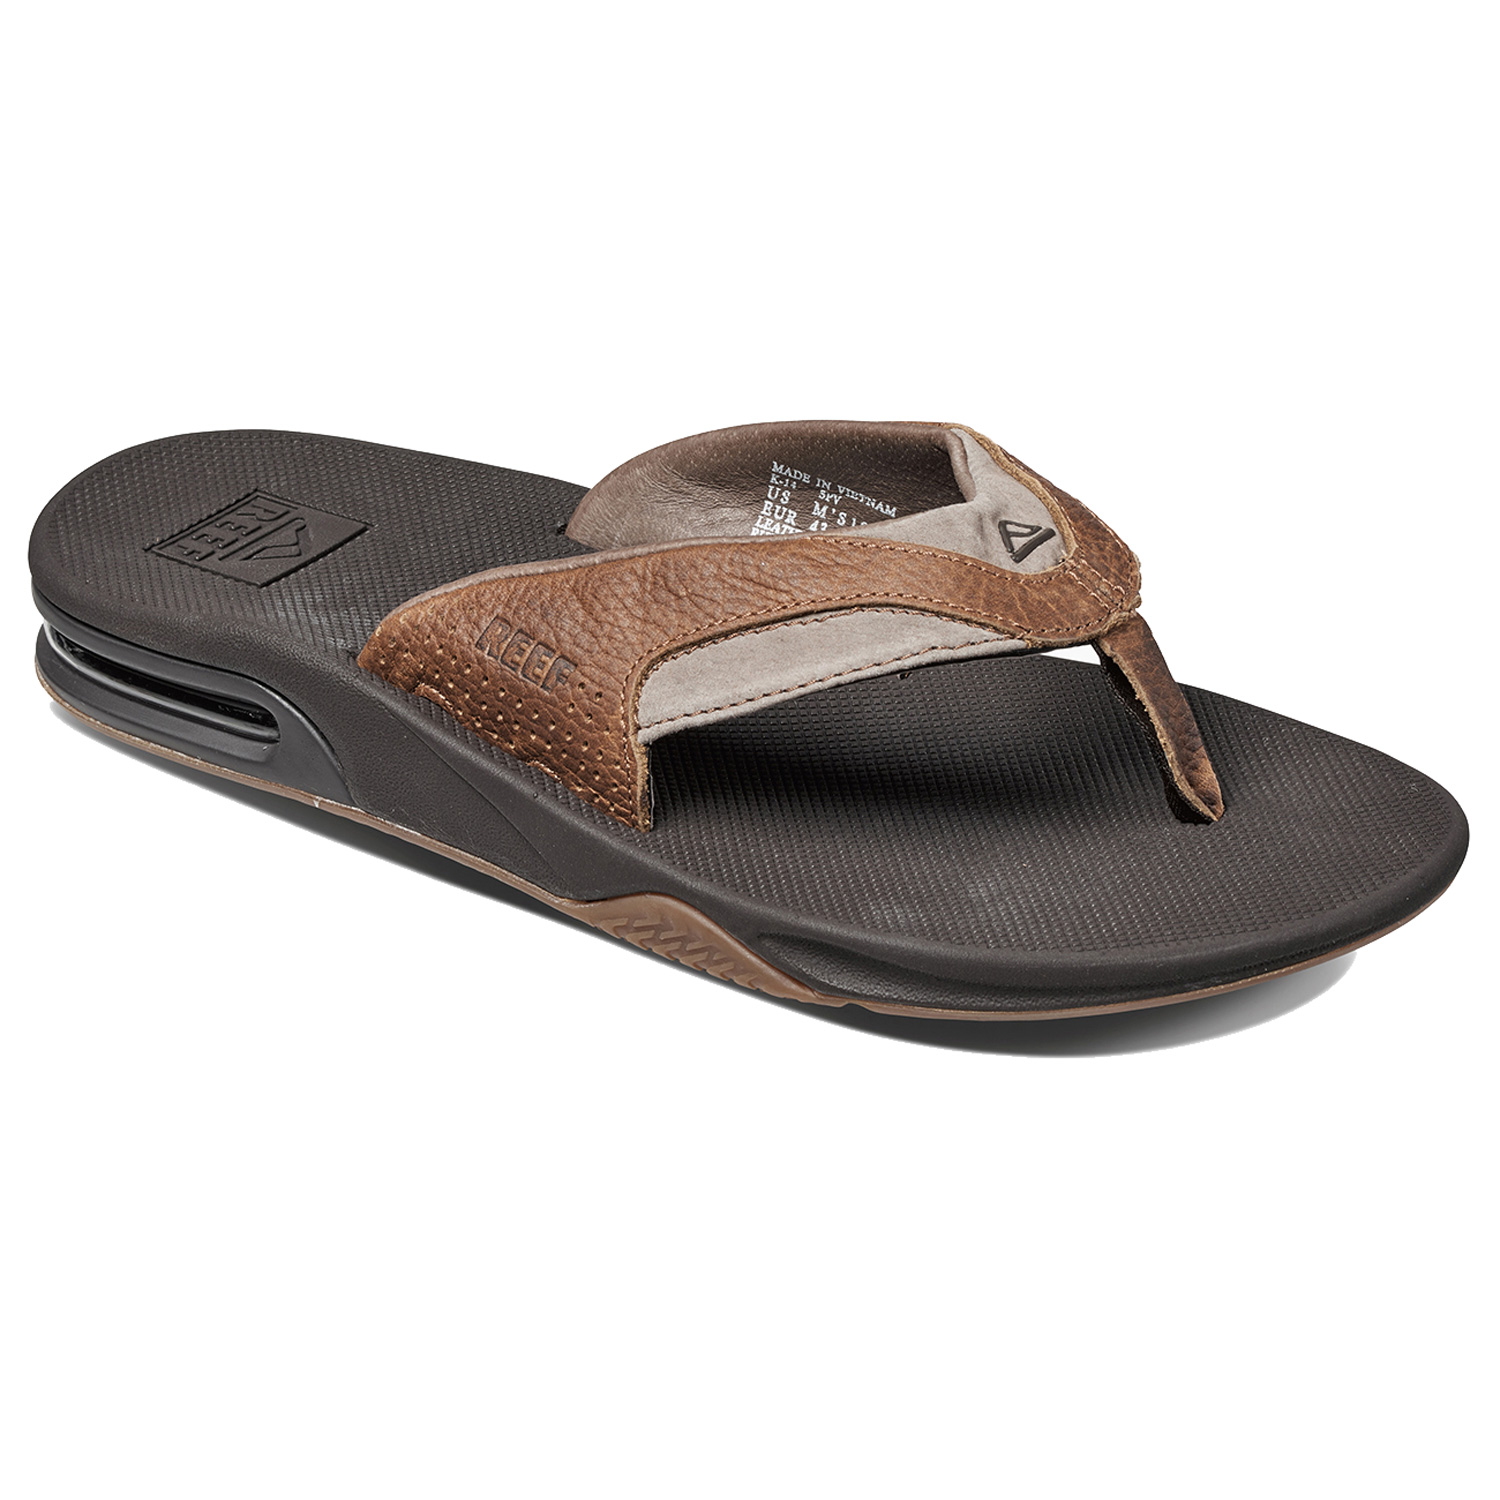 dcedc1b9f2a Reef Leather Fanning Flip Flops